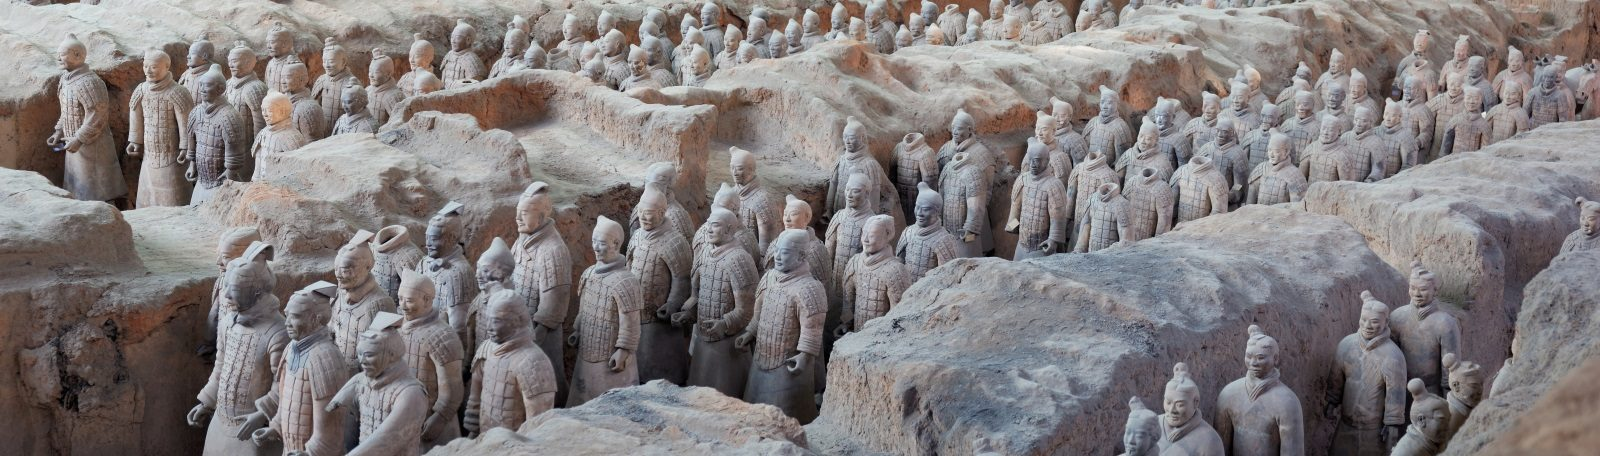 Image of the Terracotta Warriors at Xi'an